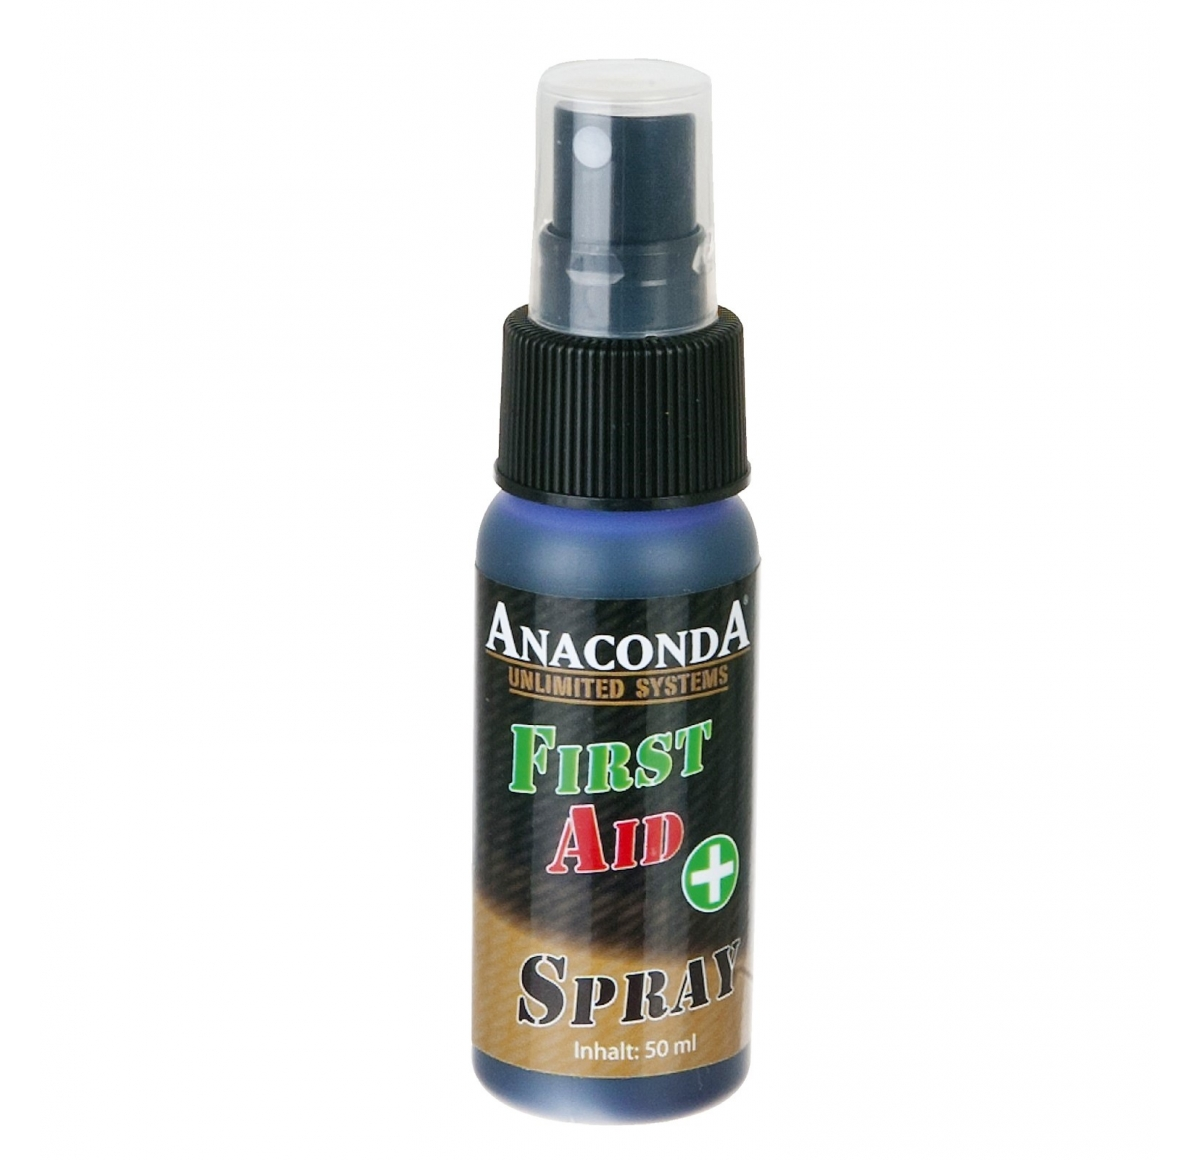 ANACONDA First Aid Spray